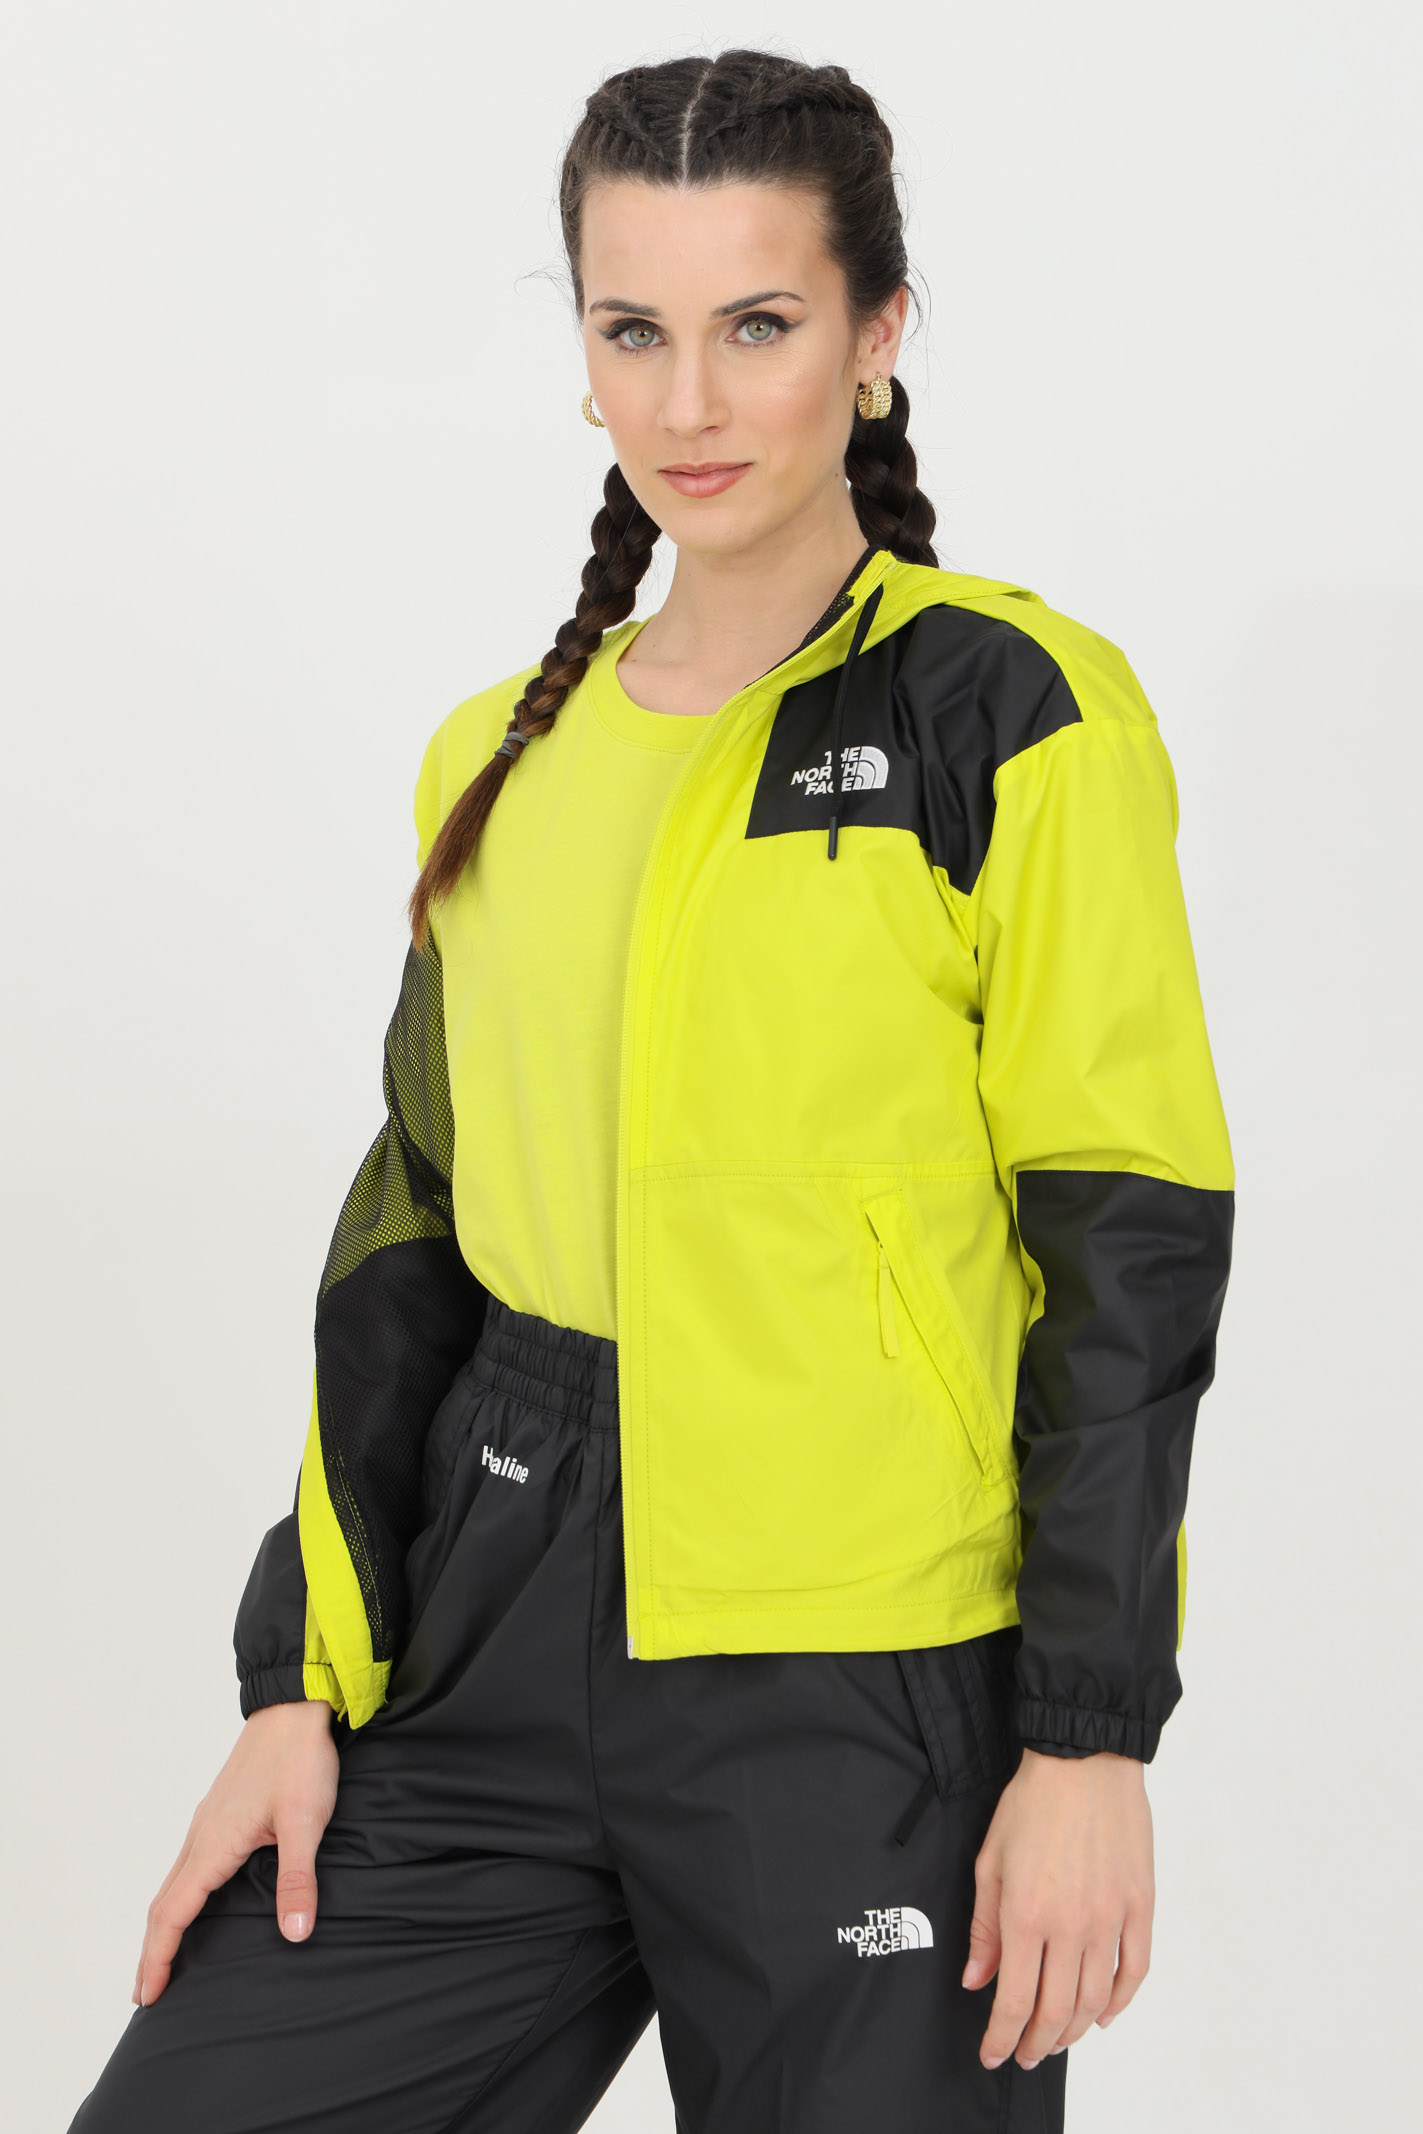 The Sheru jacket is distinguished by the iconic block  THE NORTH FACE | Jacket | NF0A4C9HJE31JE31